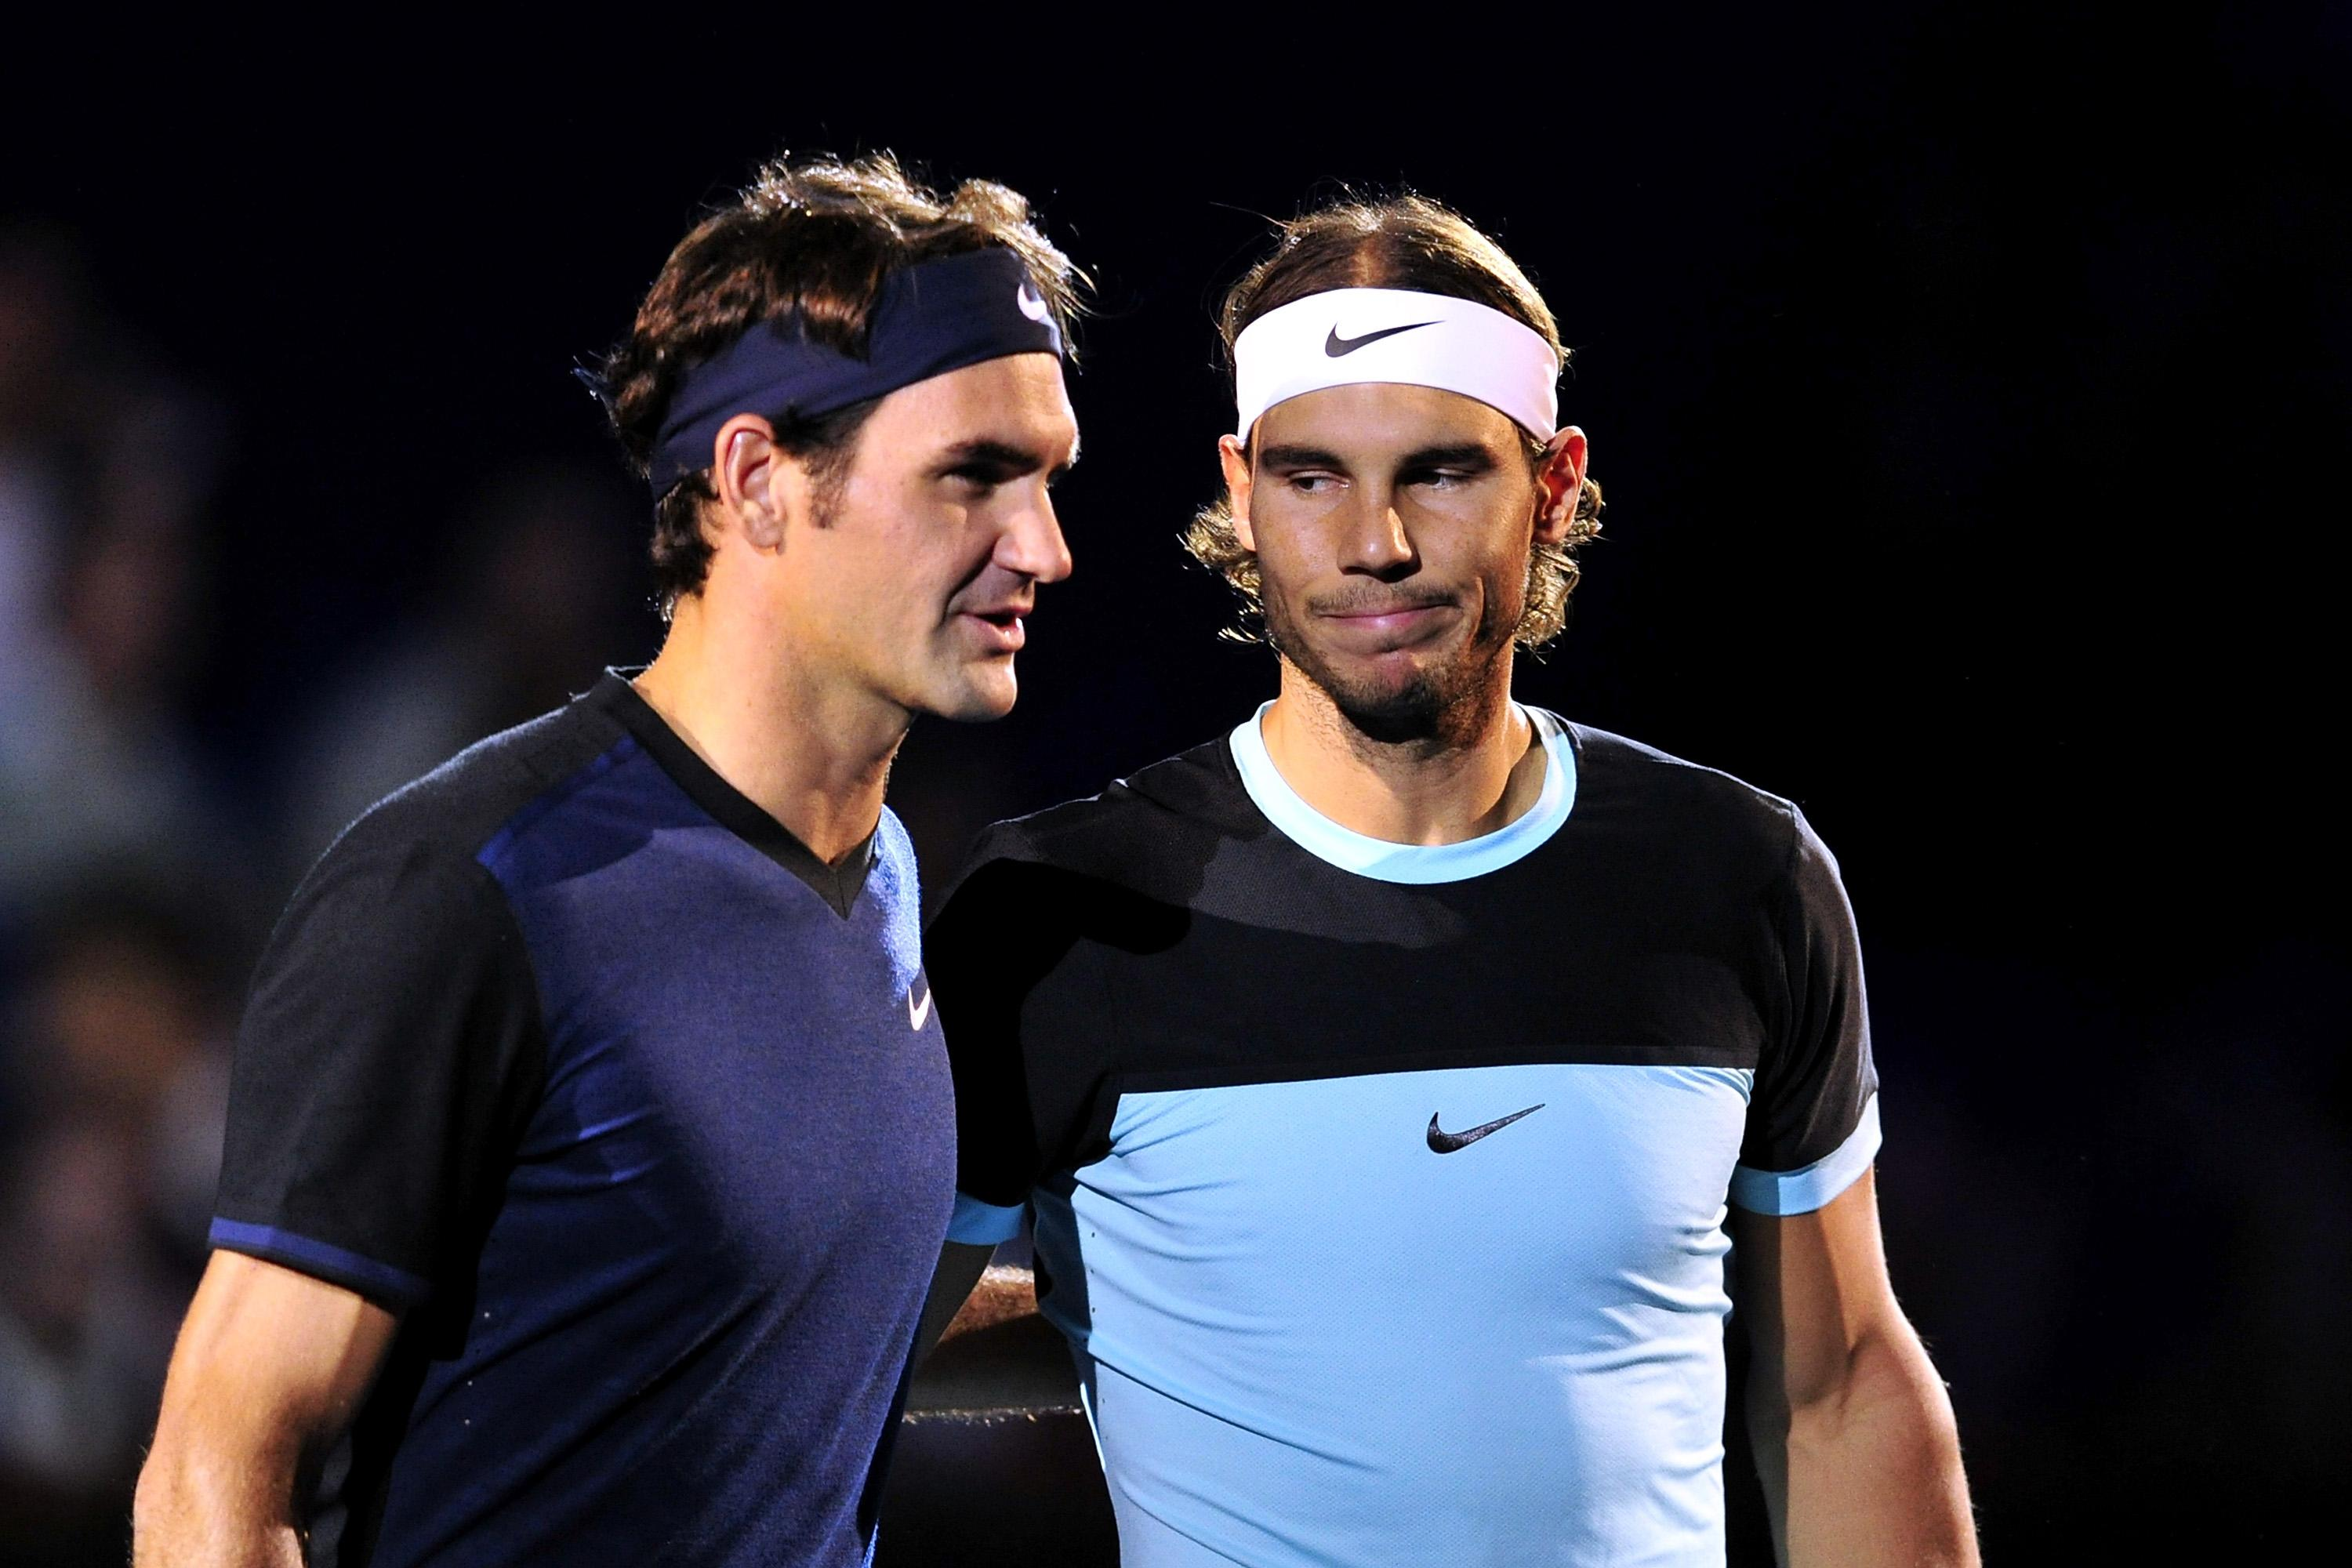 Roger Federer v Rafael Nadal - who will win?